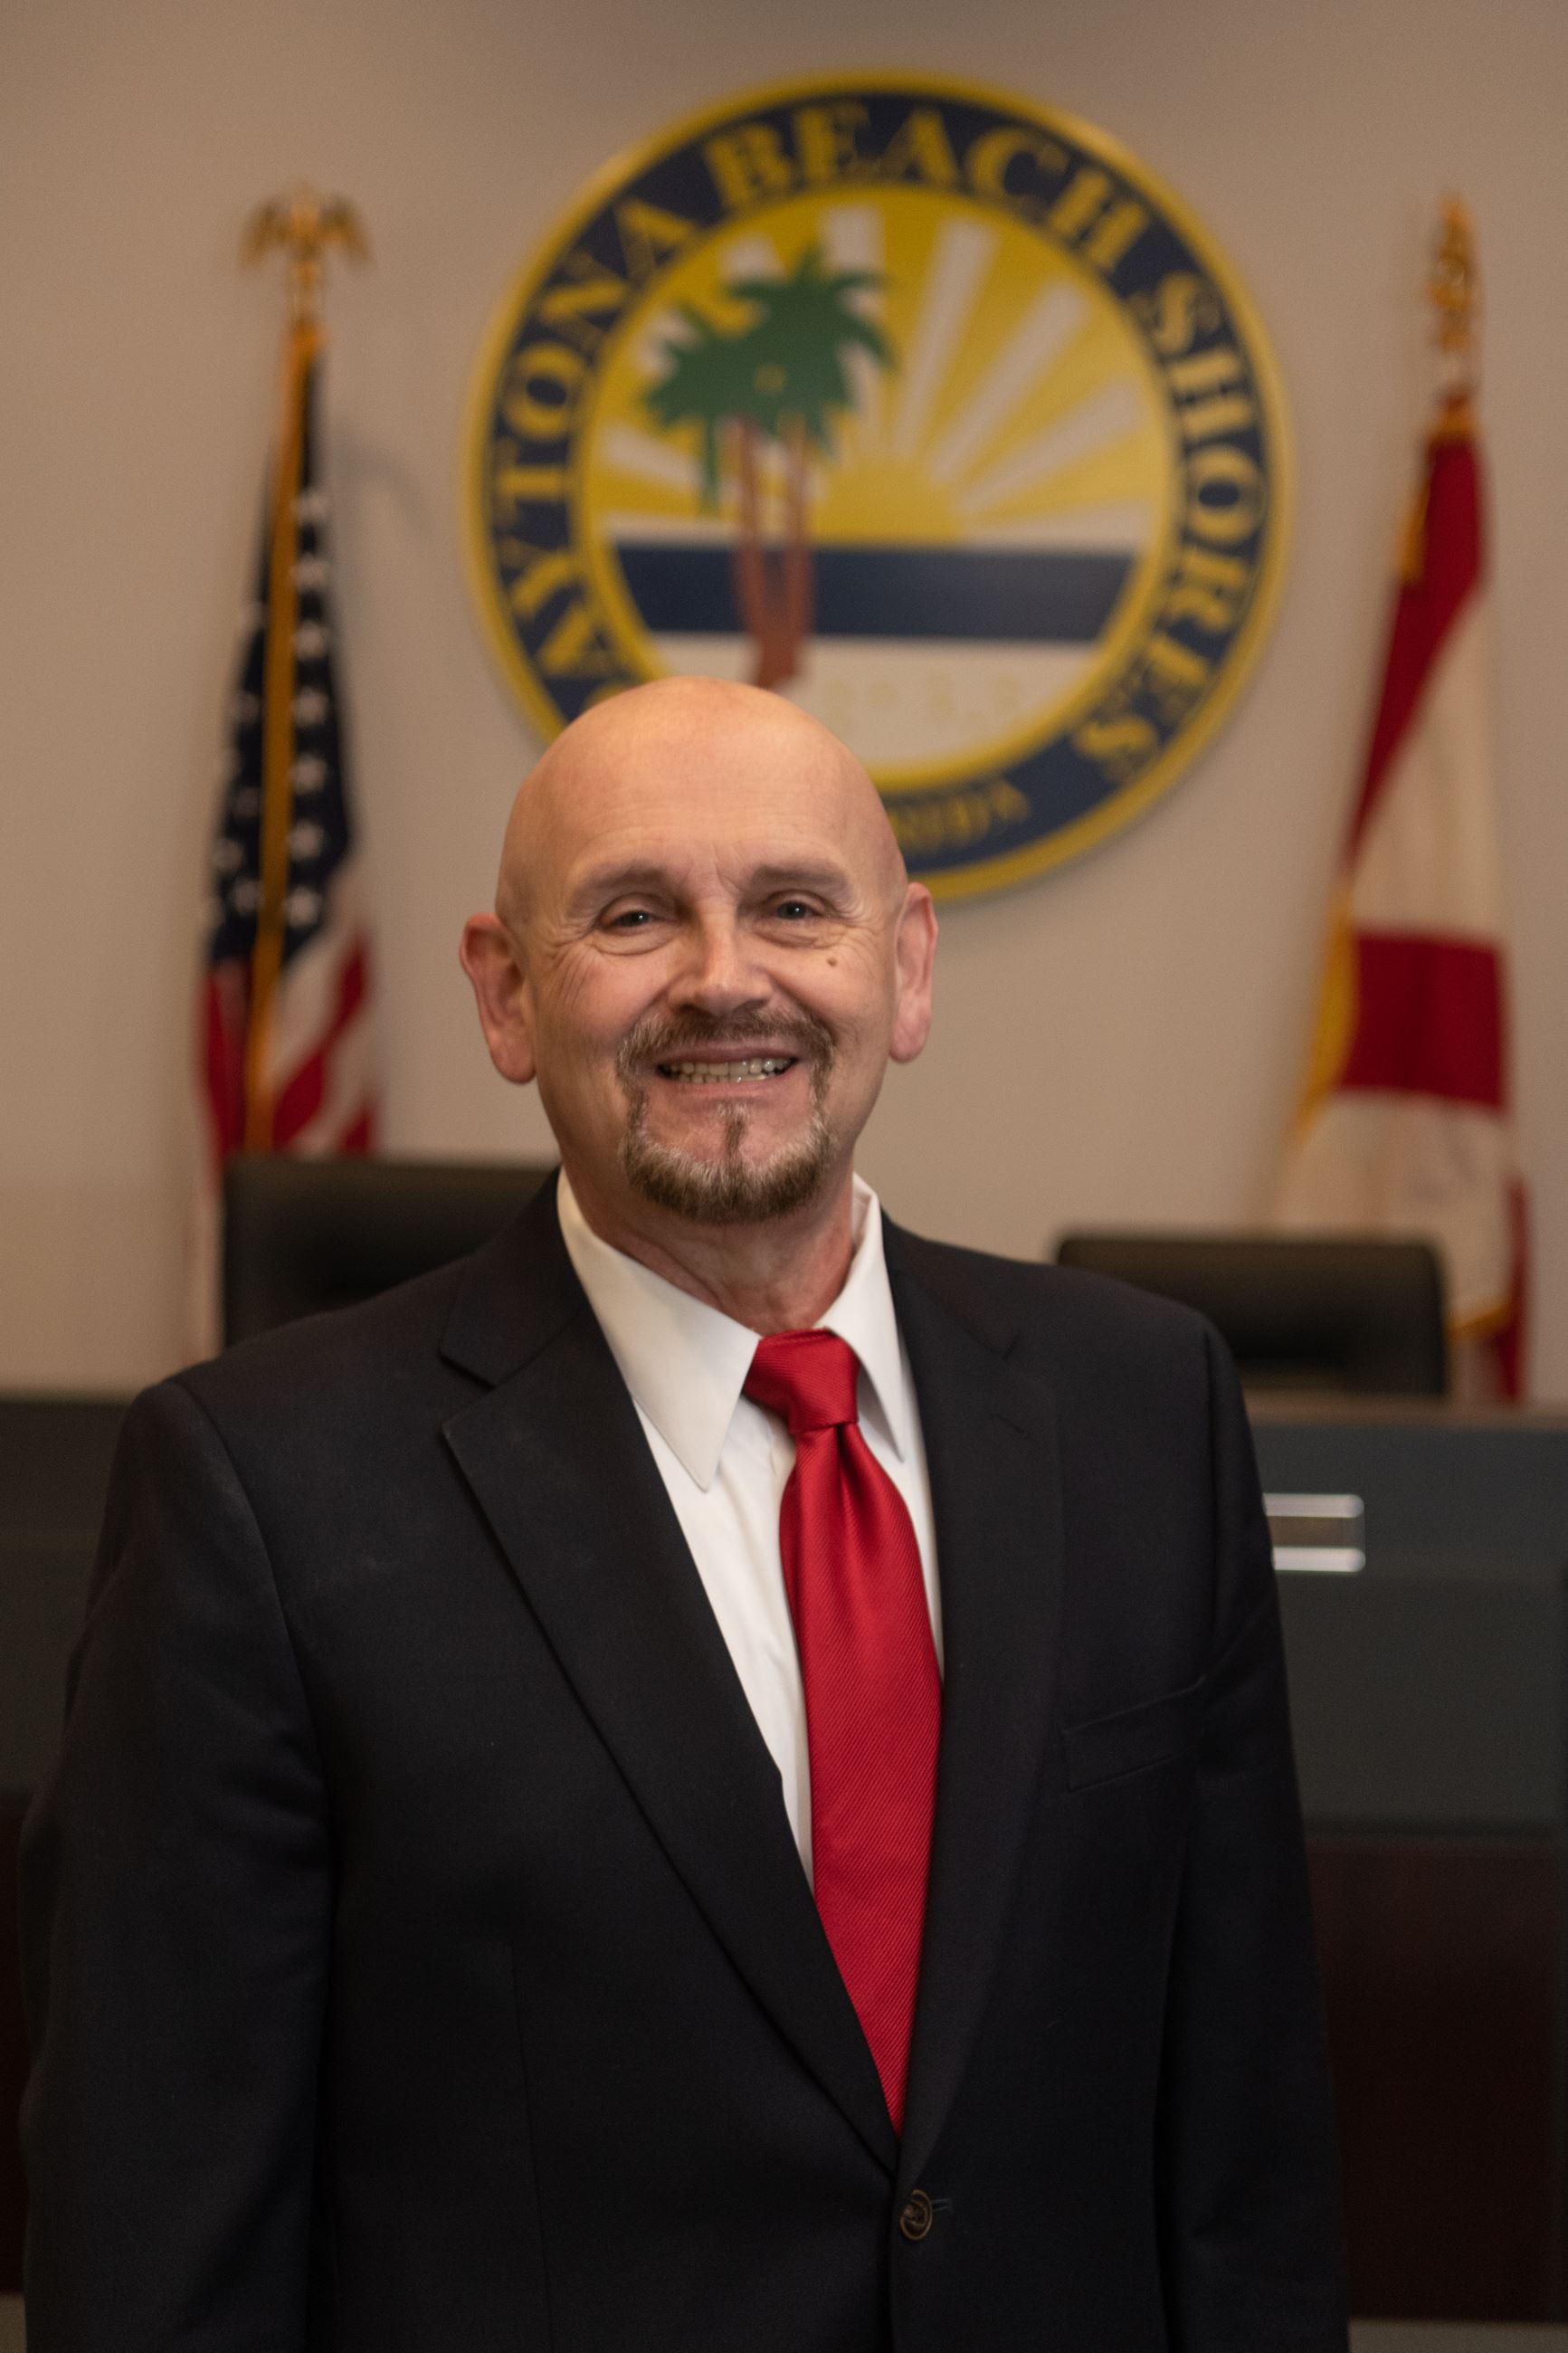 City Manager Michael Booker